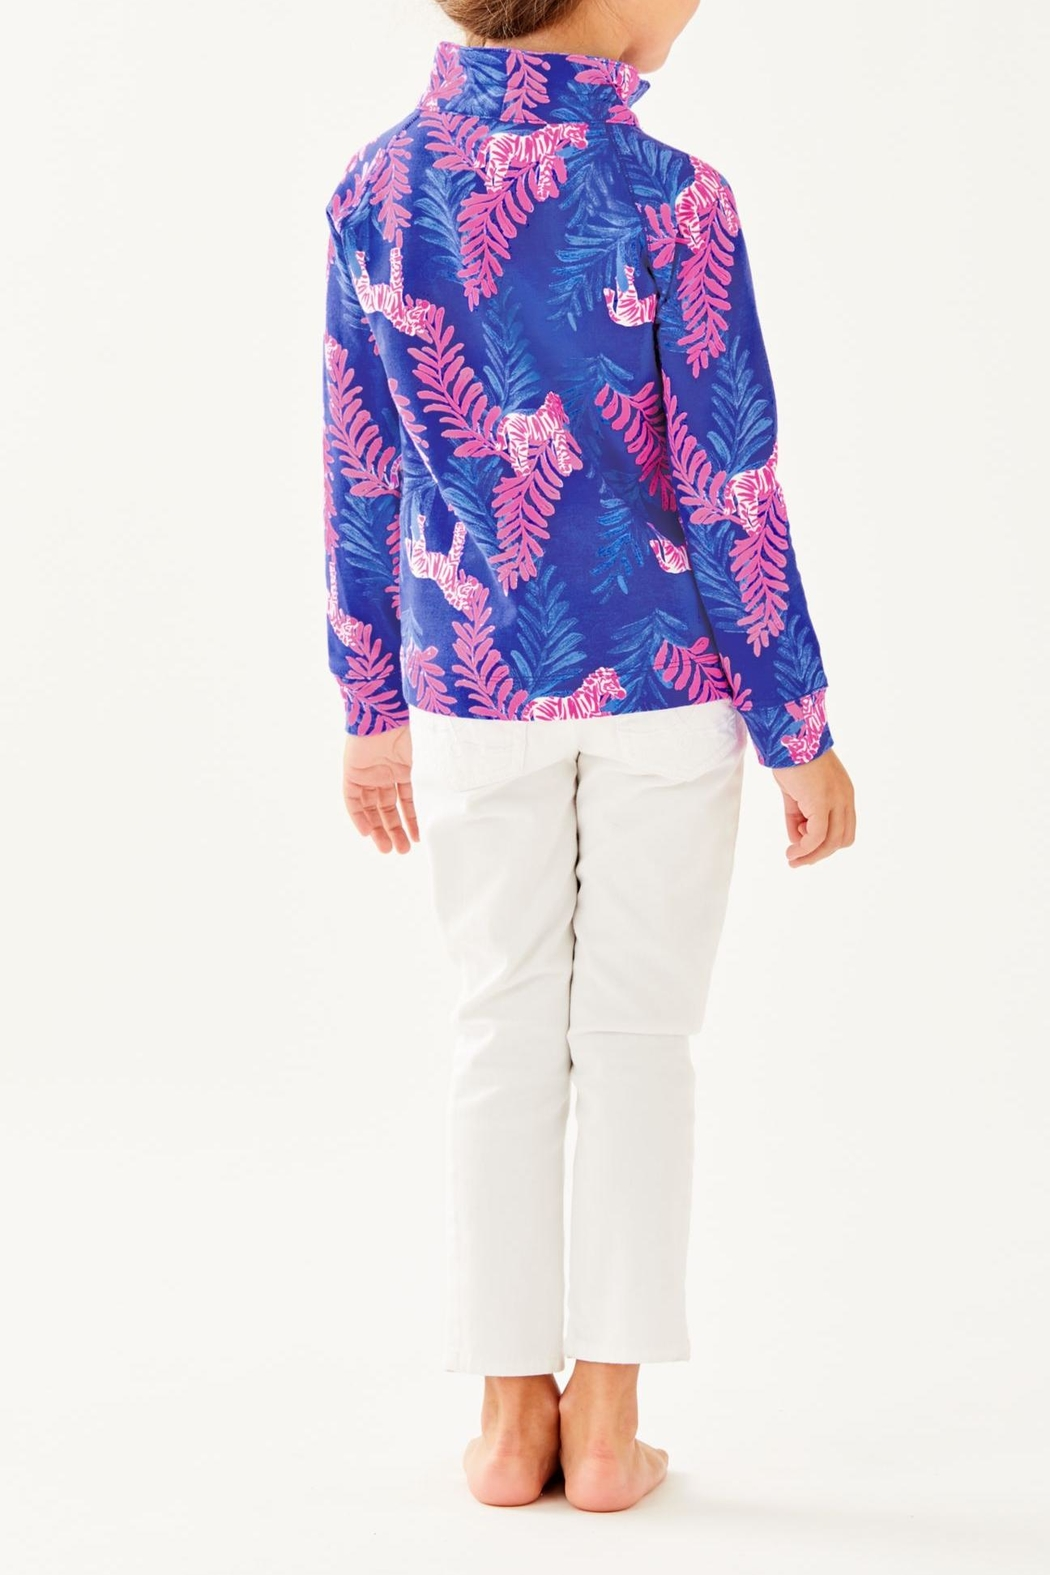 Lilly Pulitzer Girls Skipper Popover - Front Full Image